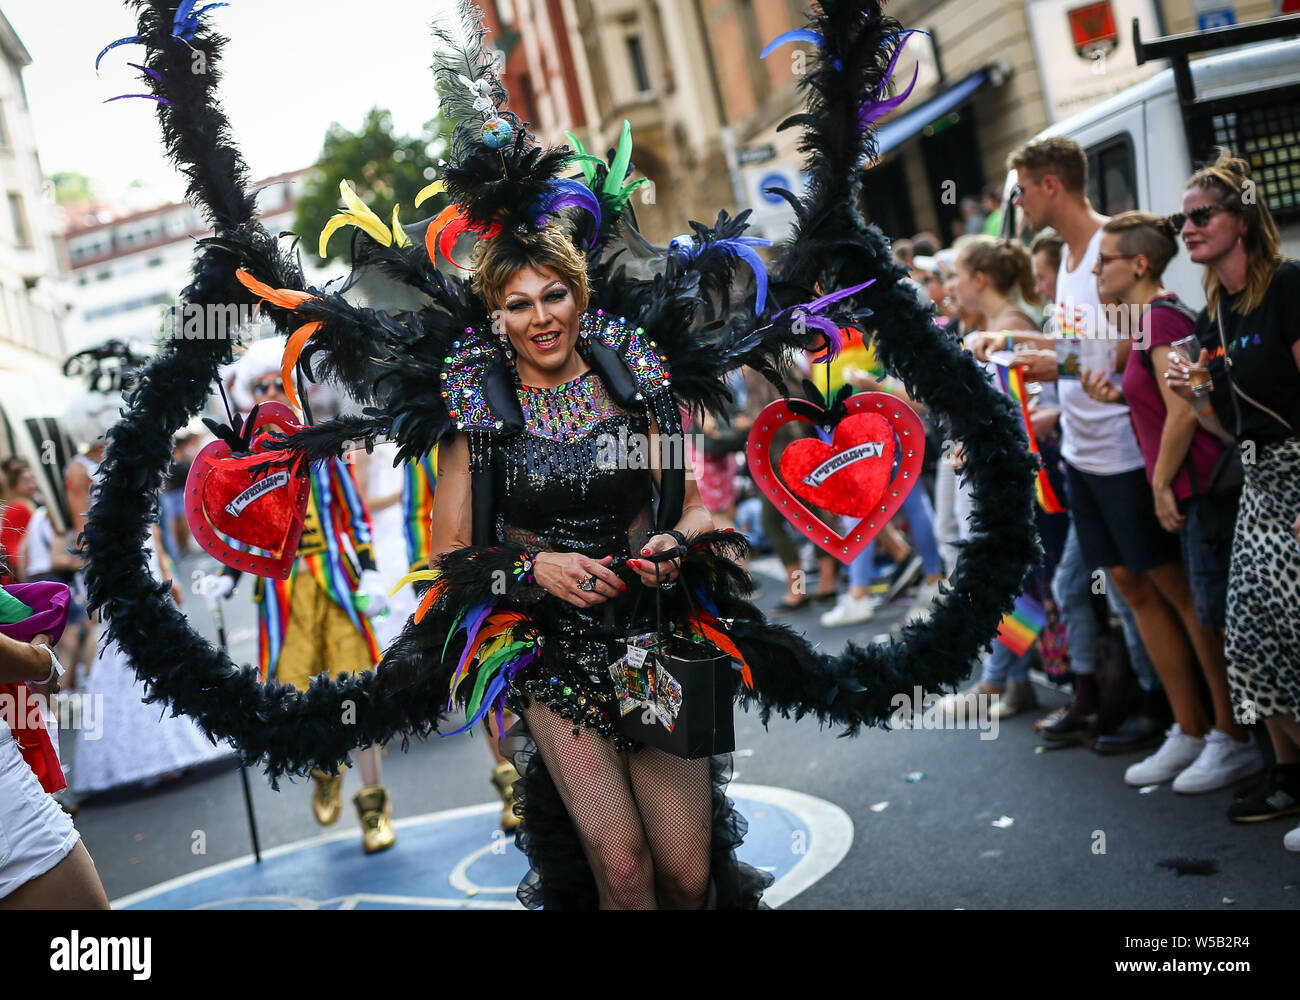 "Stuttgart, Germany. 27th July, 2019. Disguised participants march through the city centre at the Christopher Street Day (CSD) parade. The political parade stands for the rights of gays, lesbians, bisexuals and transgender people under the motto ""Courage to Freedom"". Credit: Christoph Schmidt/dpa/Alamy Live News Stock Photo"